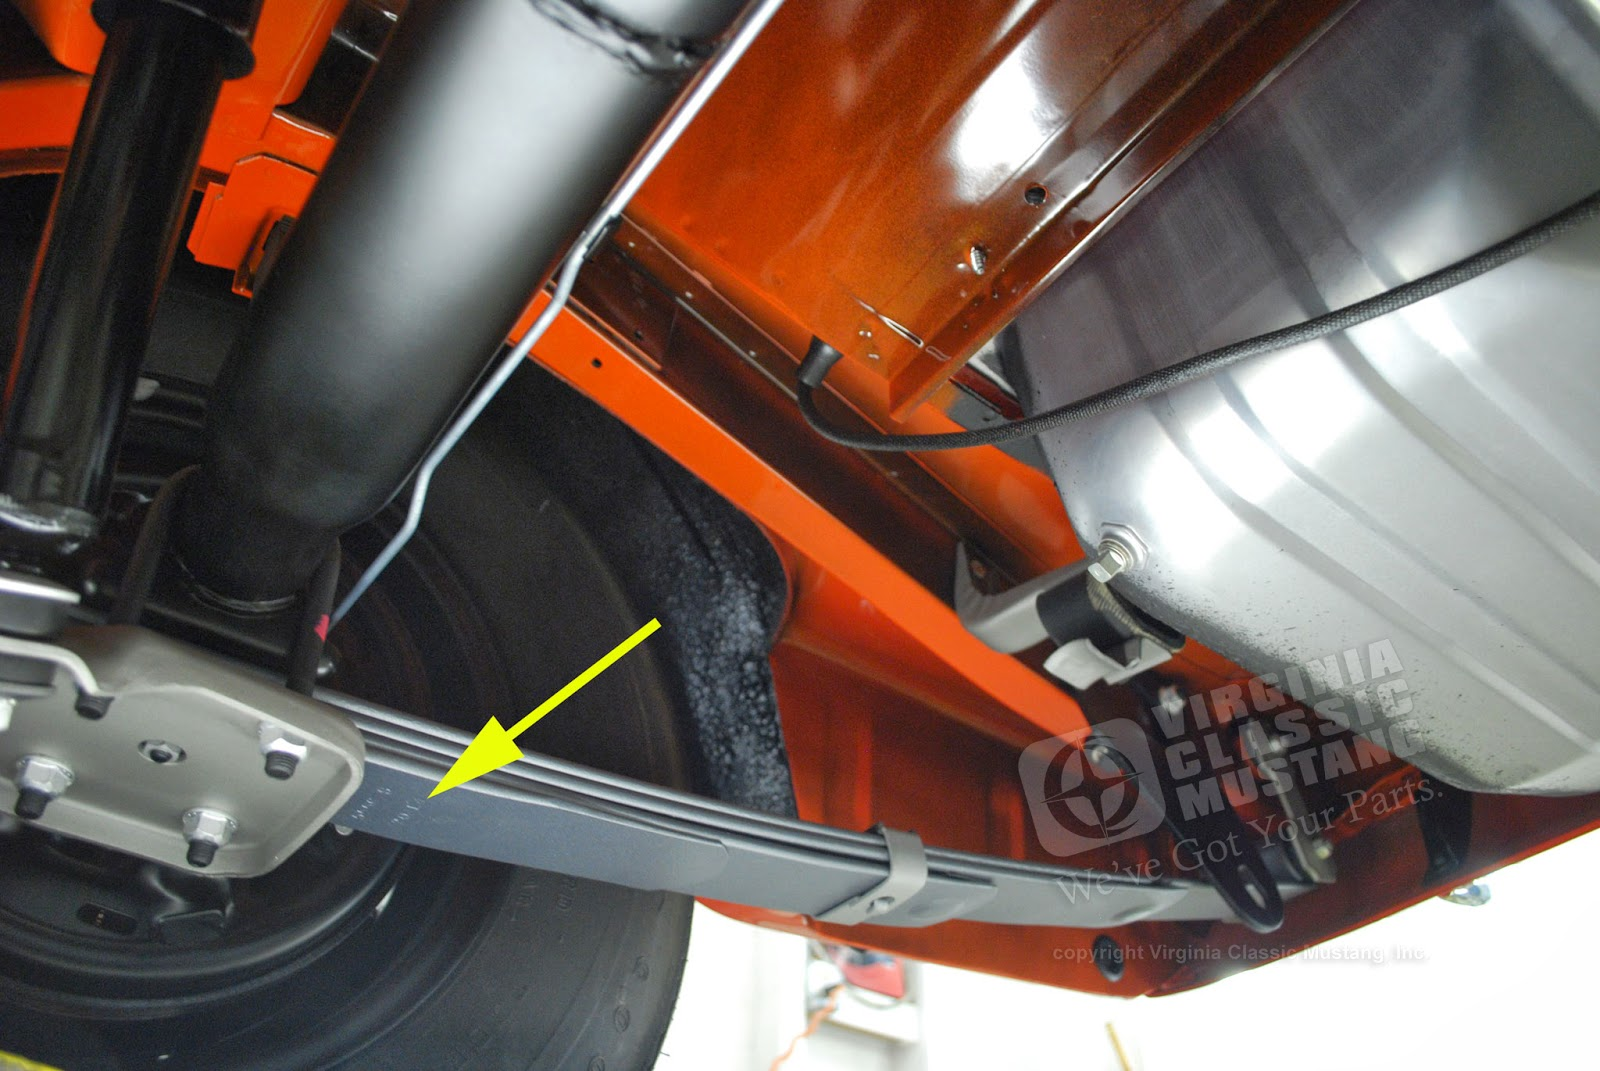 Virginia classic mustang blog just the details date codes on mustang rear leaf springs